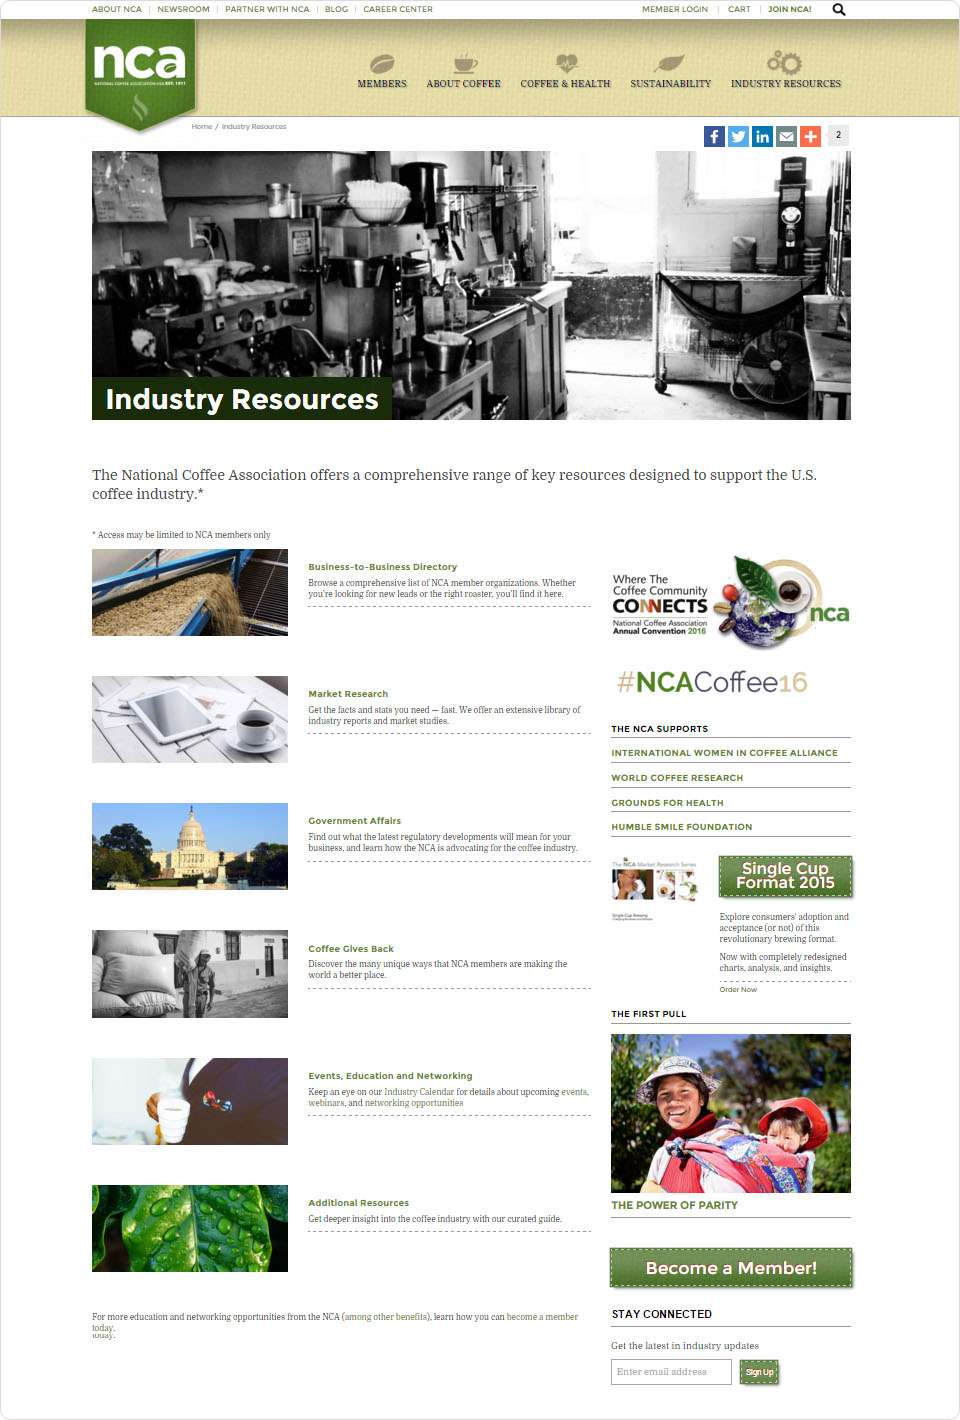 nca-resources